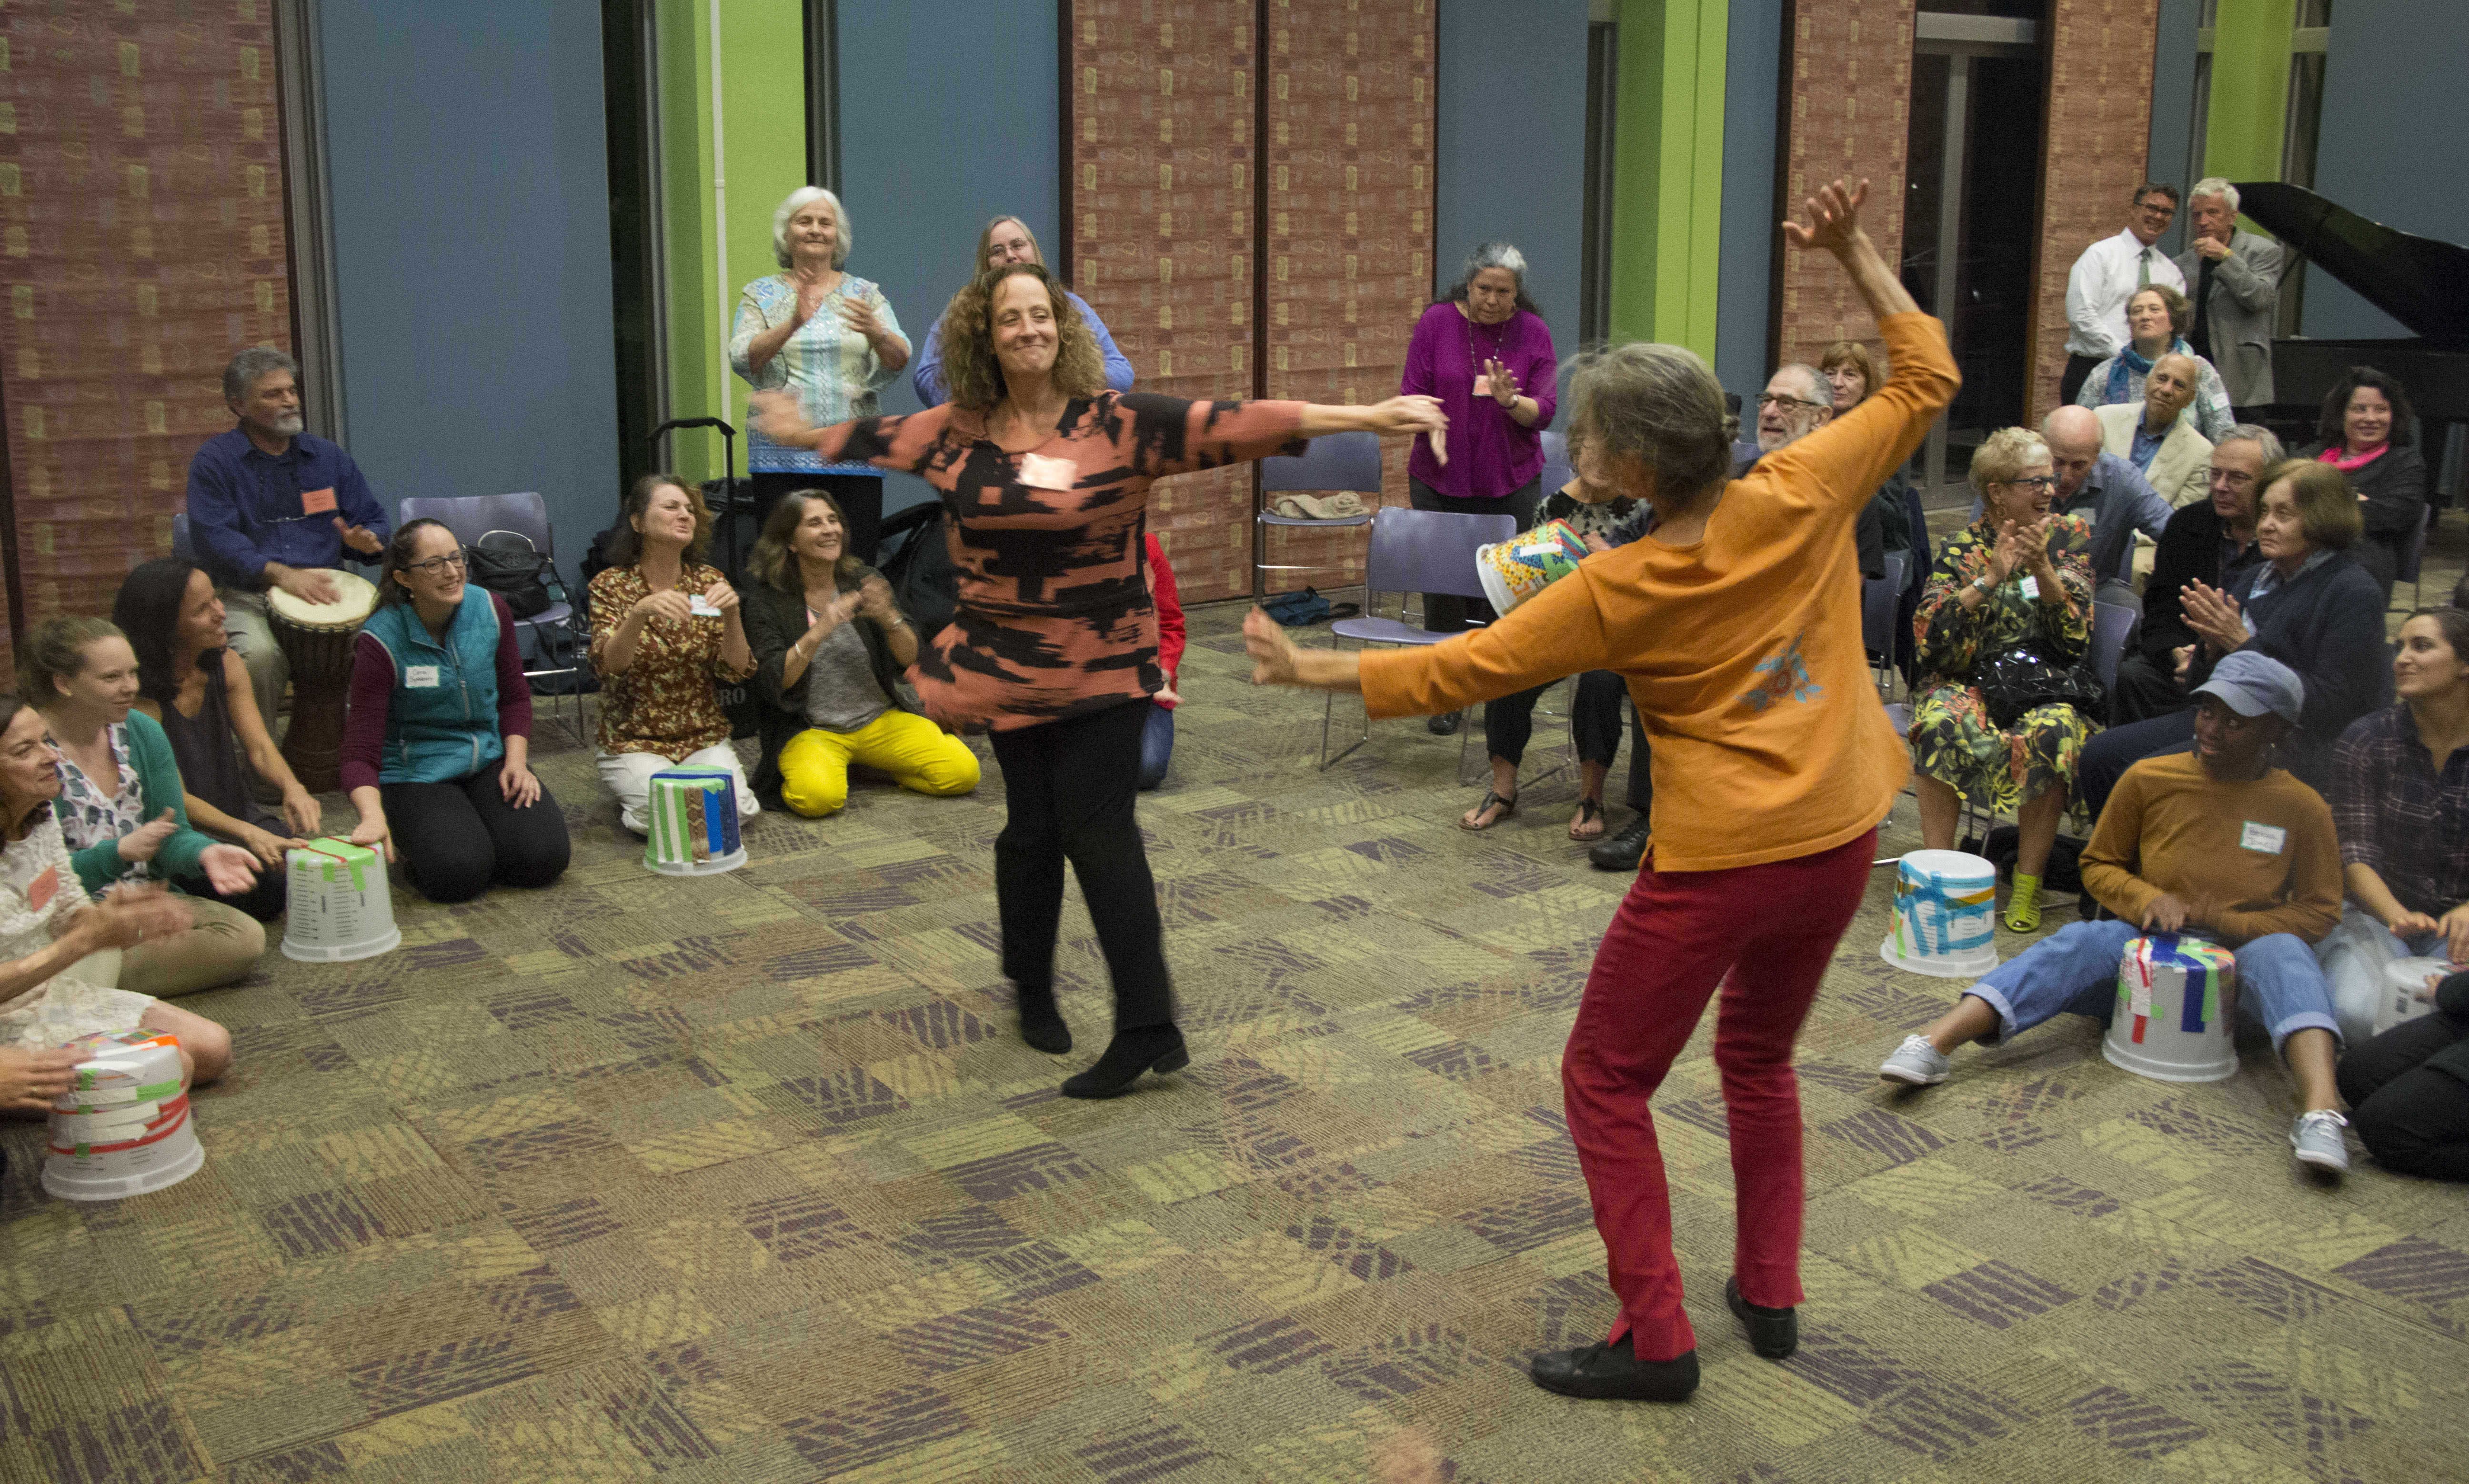 Two women dancing in the middle of a circle of people sitting down.